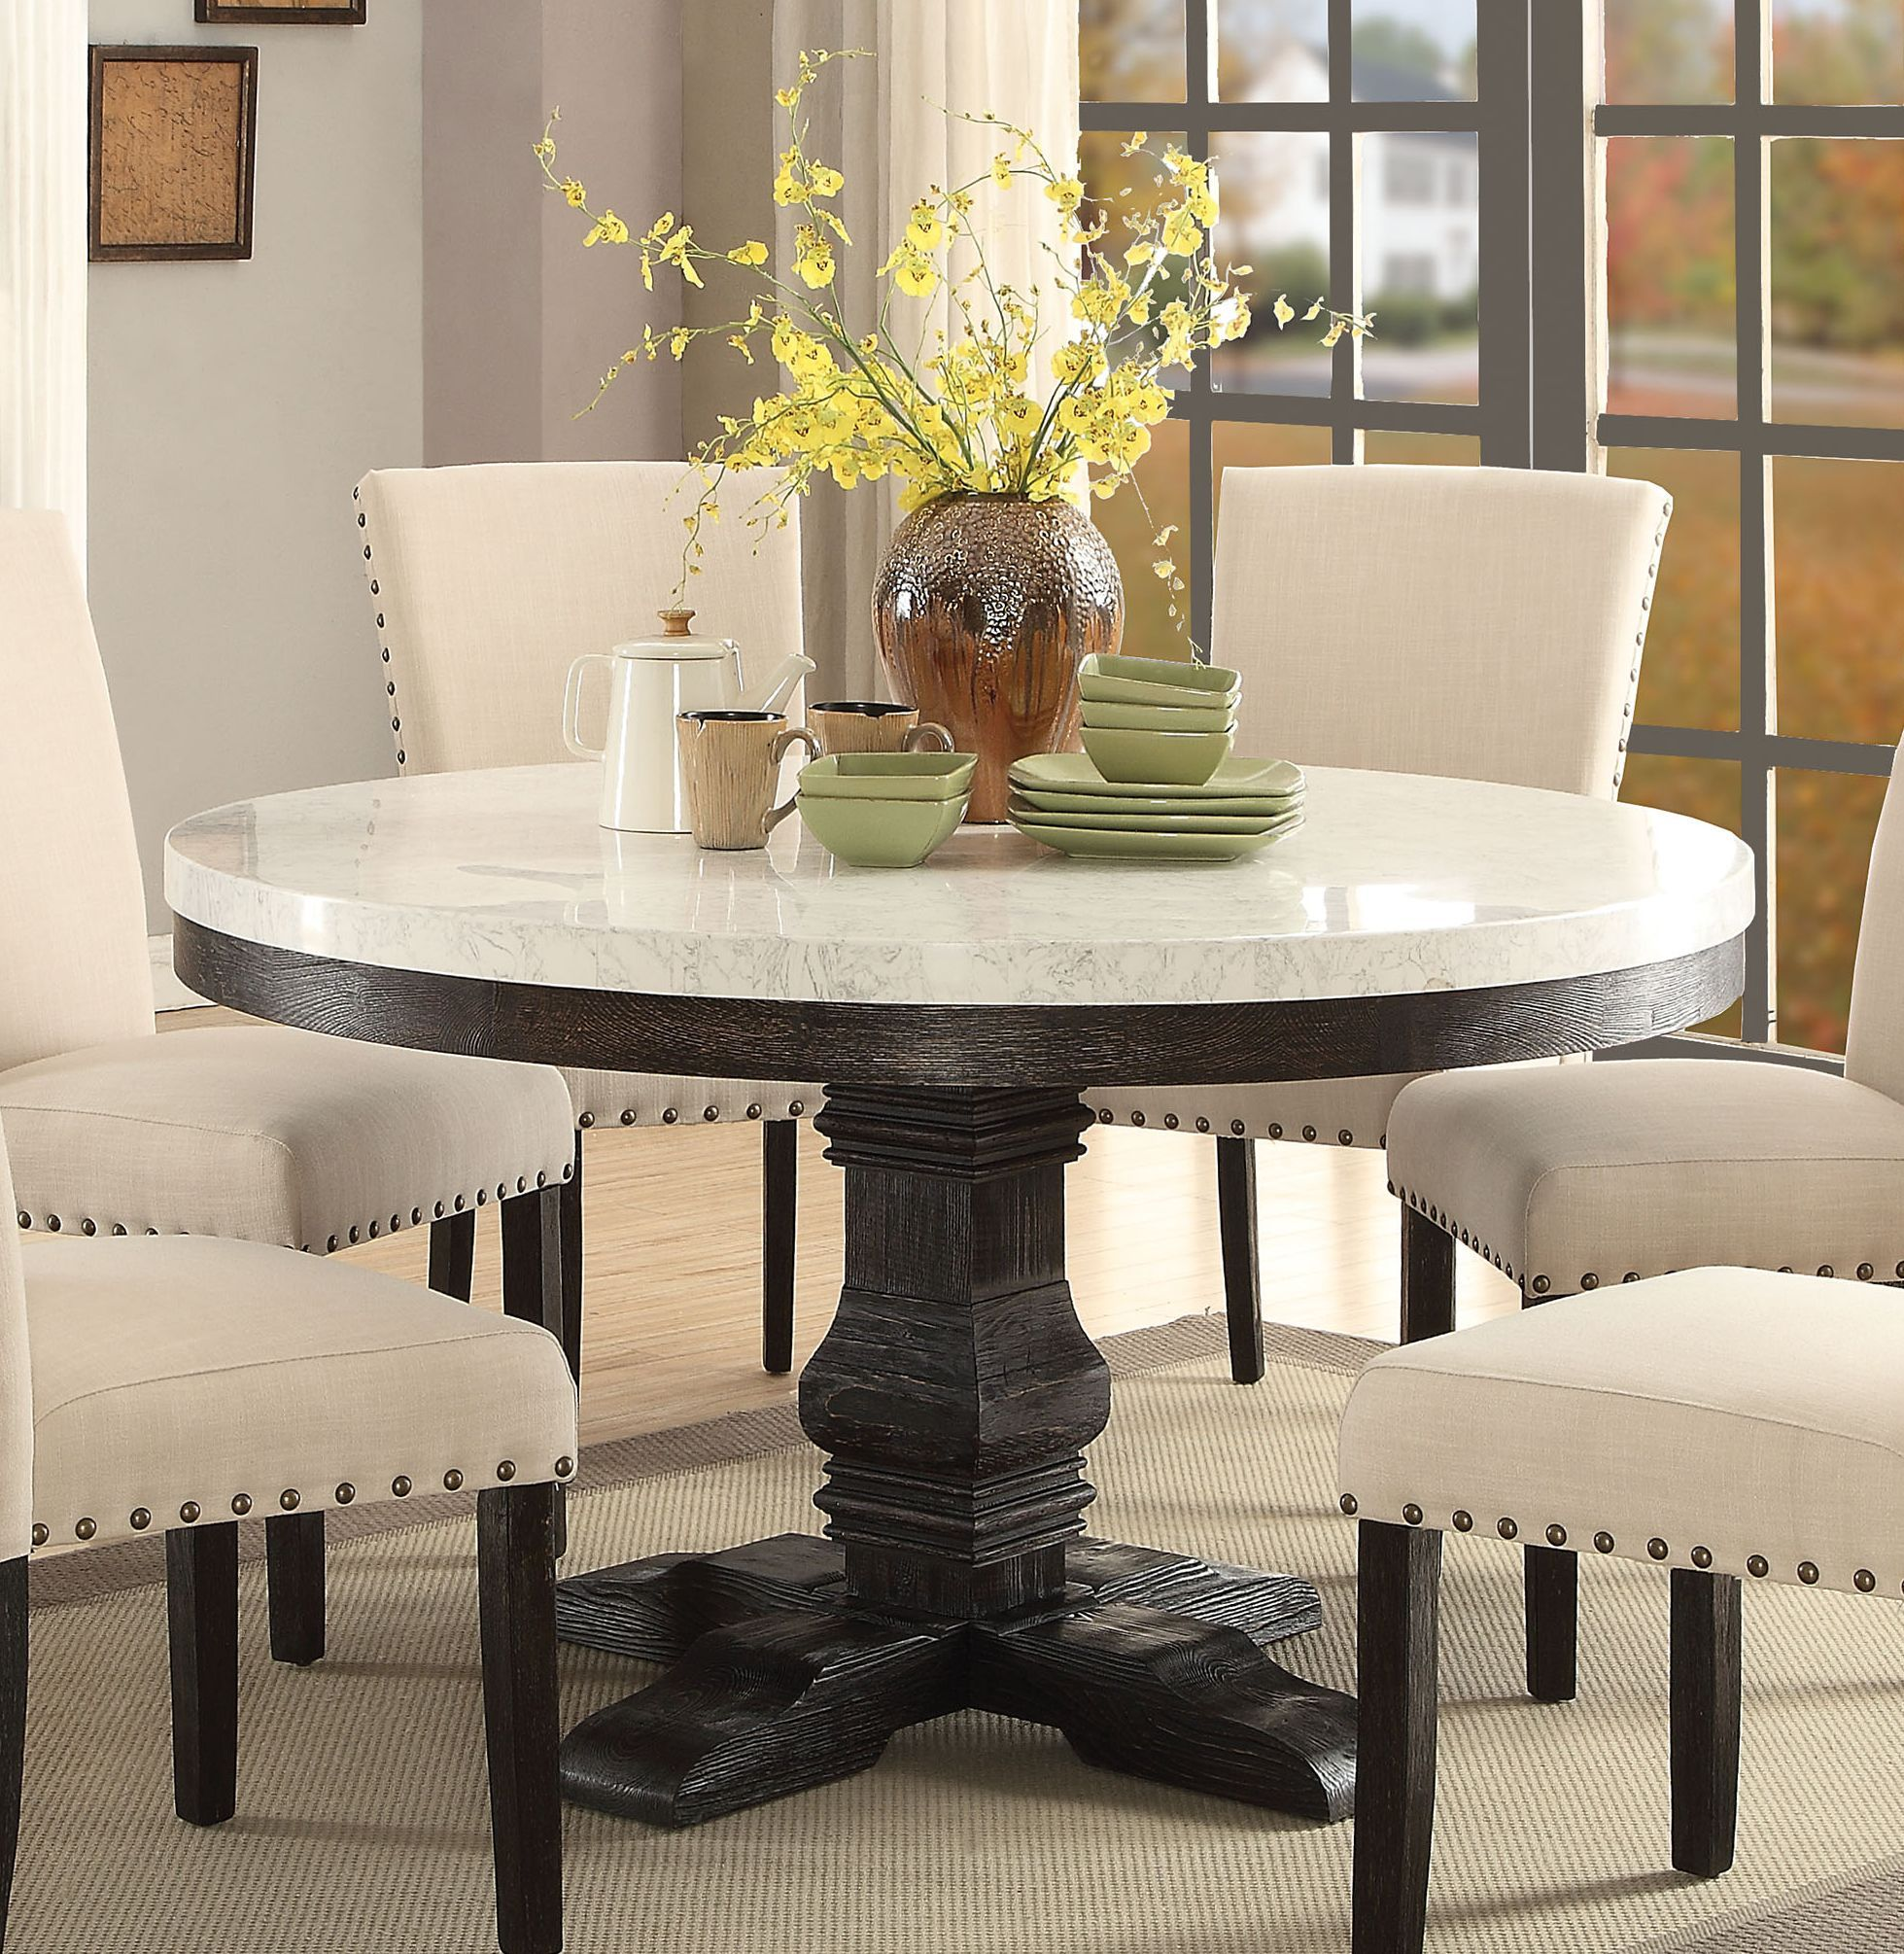 21 Beautiful Round Marble Top Dining Table In Dining Room ...